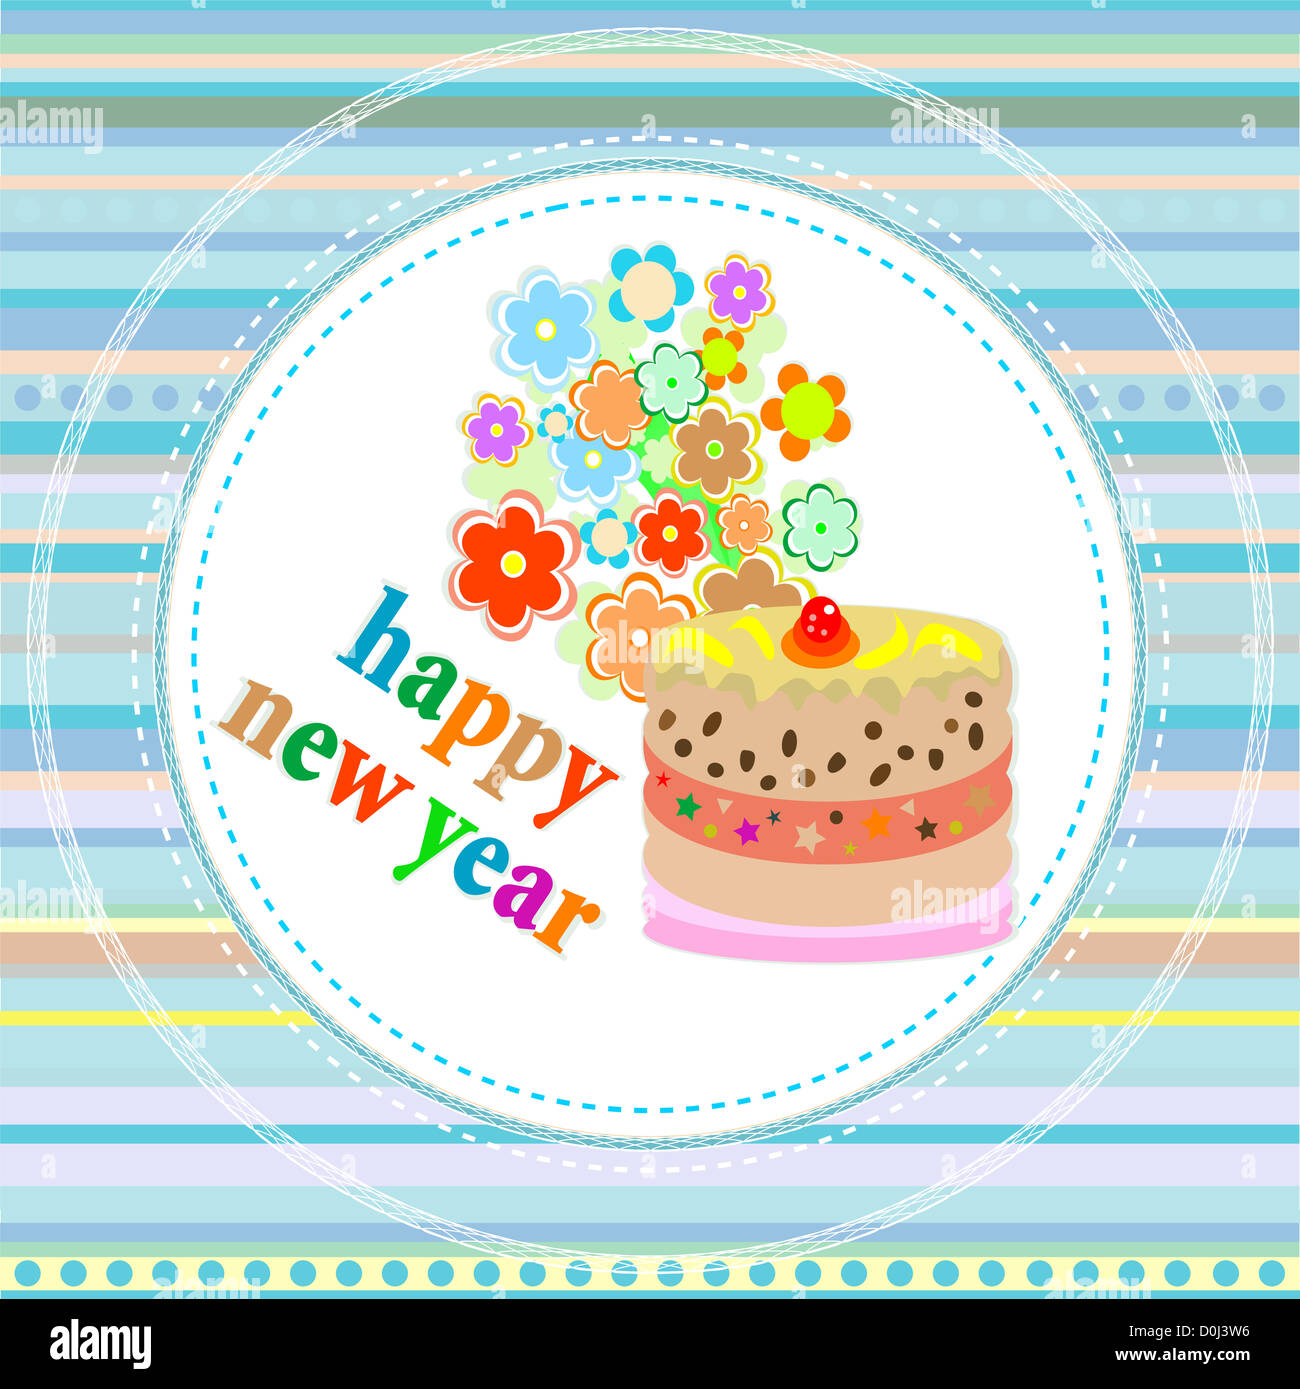 flowers and christmas greetings, new year card with a cake - Stock Image